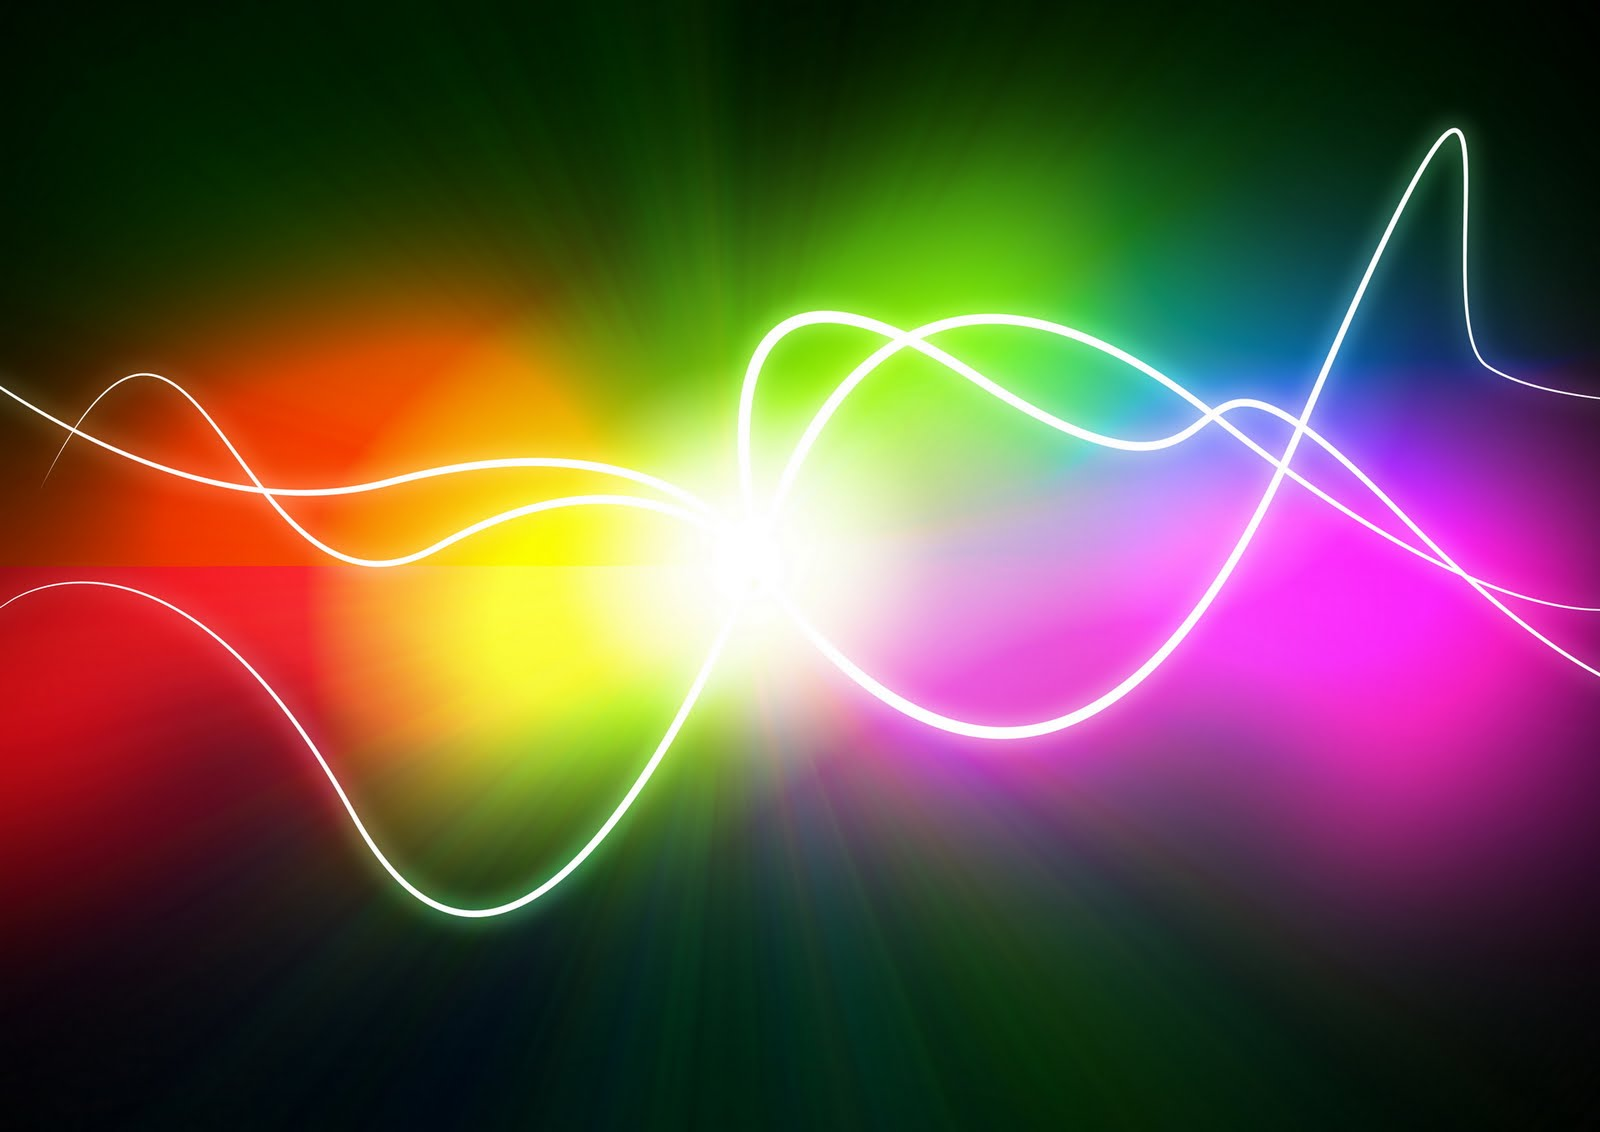 Abstract Colorful Lights HQ Wallpapers HD Wallpapers 1600x1132